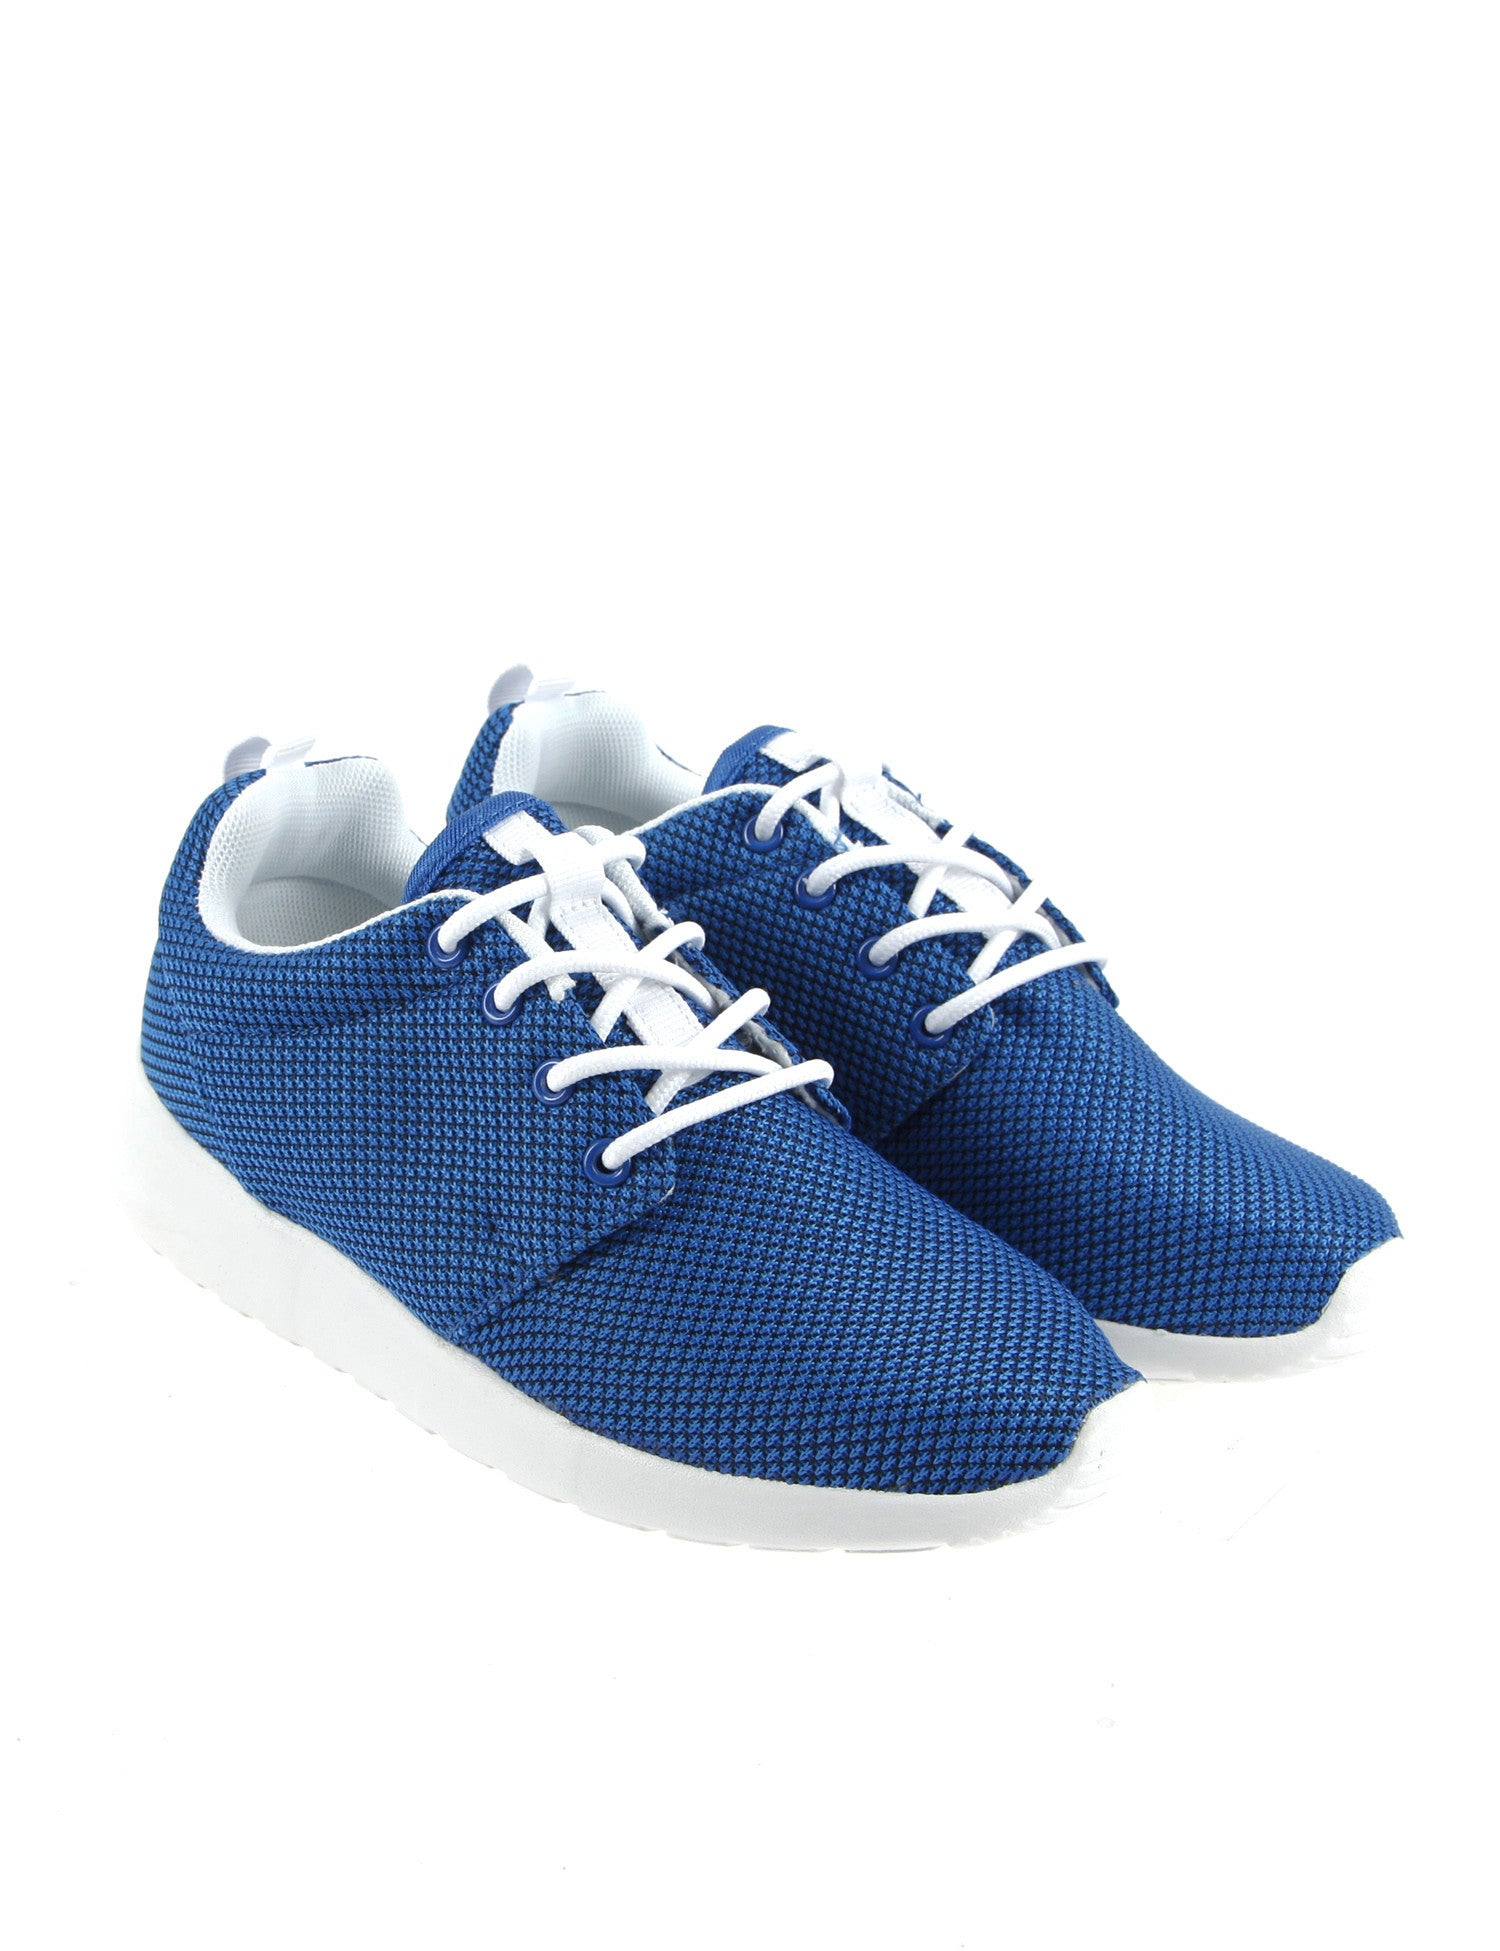 Cultz Shoes Kids 140902-003W Blue